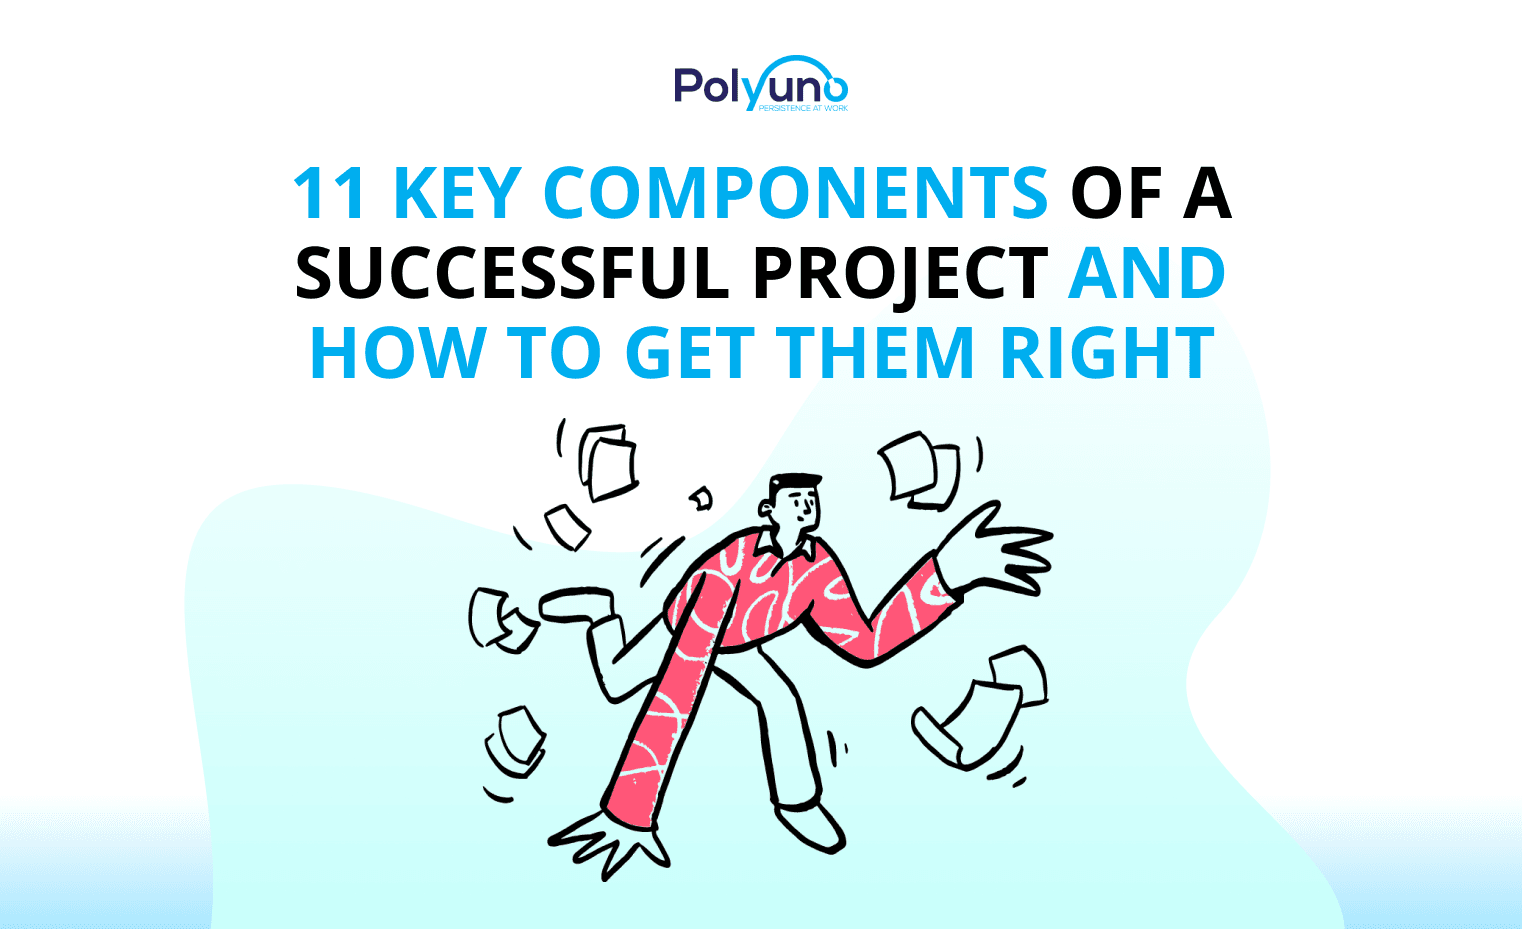 11 Key Components Of A Successful Project And How To Get Them Right